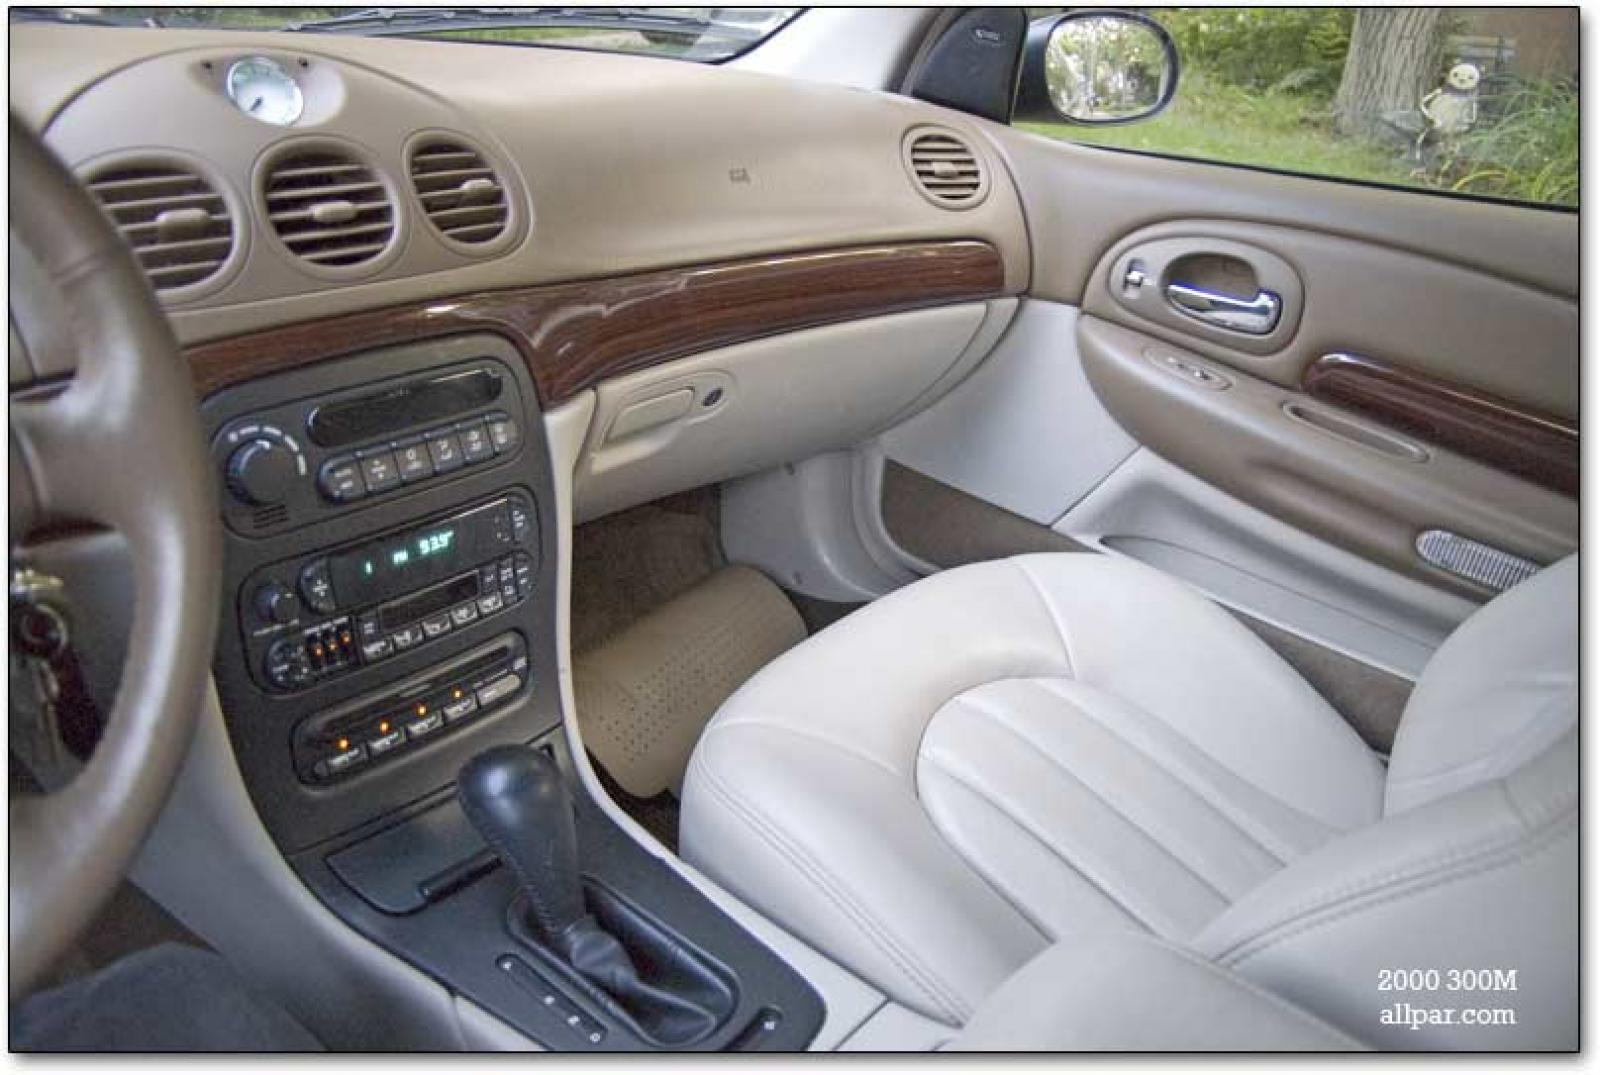 2001 Chrysler 300M - Information and photos - Neo Drive on